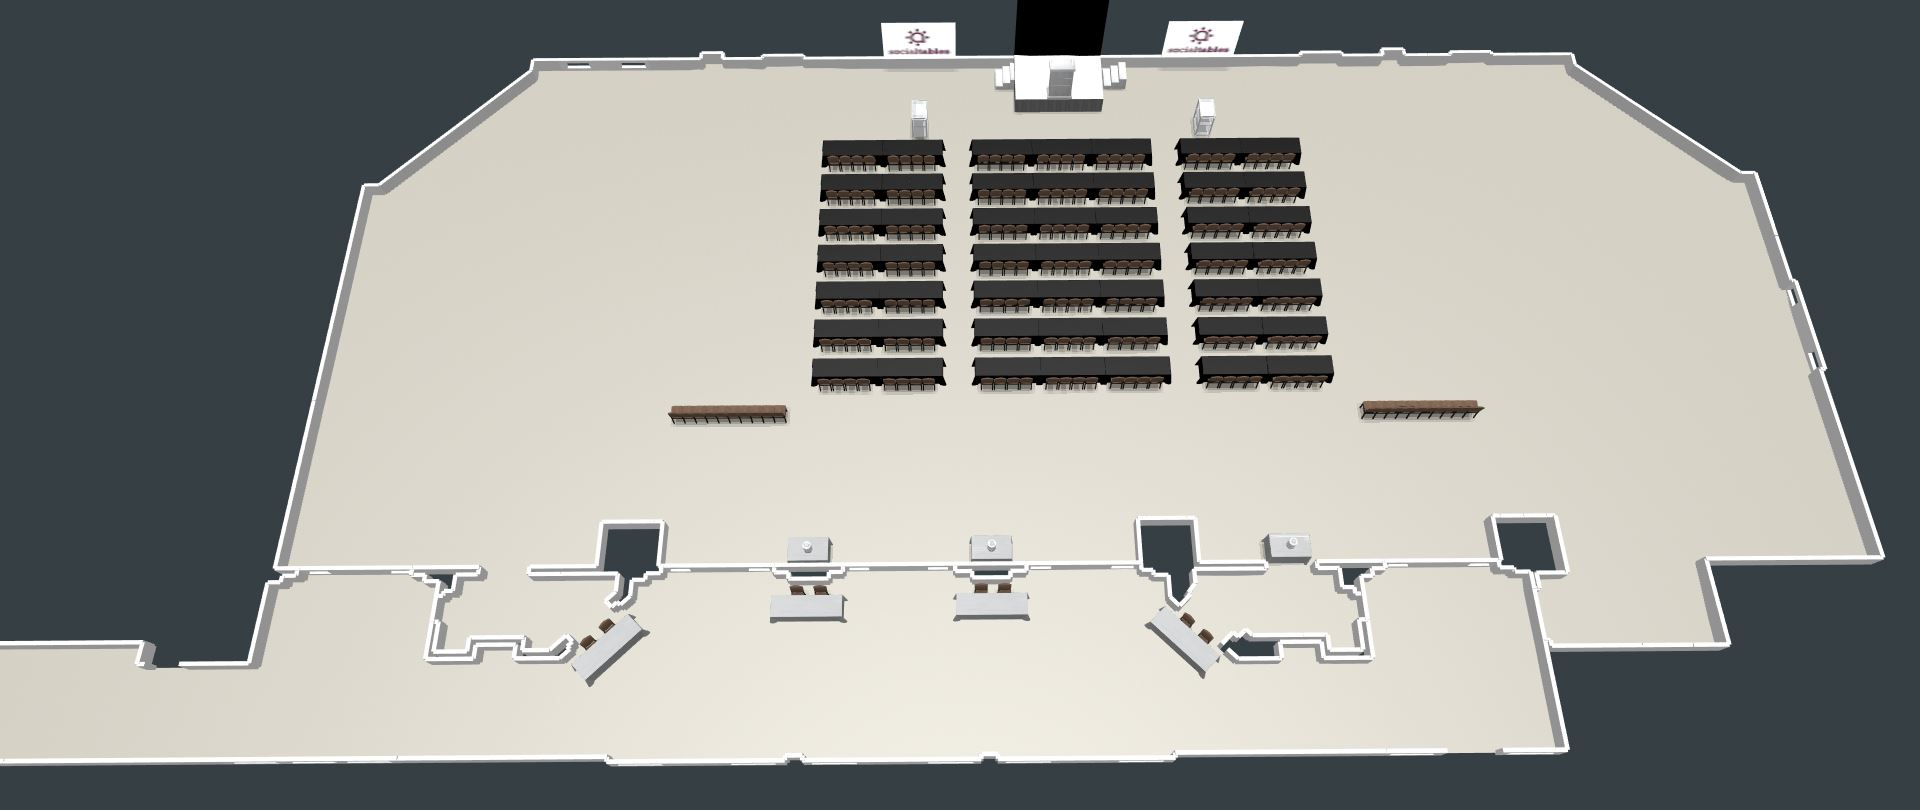 3D View of the Conference Center setup in Classroom style